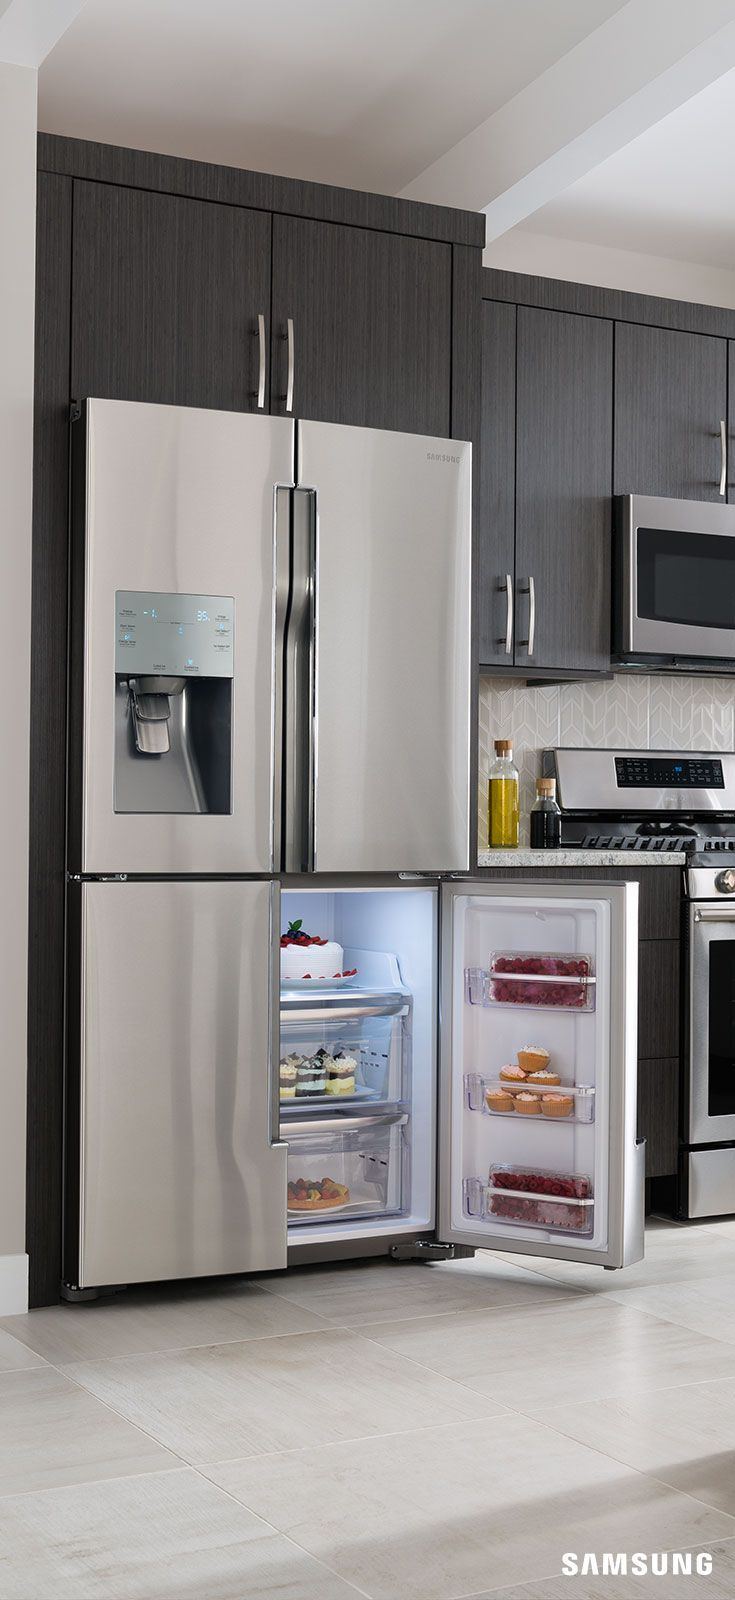 25 best ideas about Cabinet depth refrigerator on